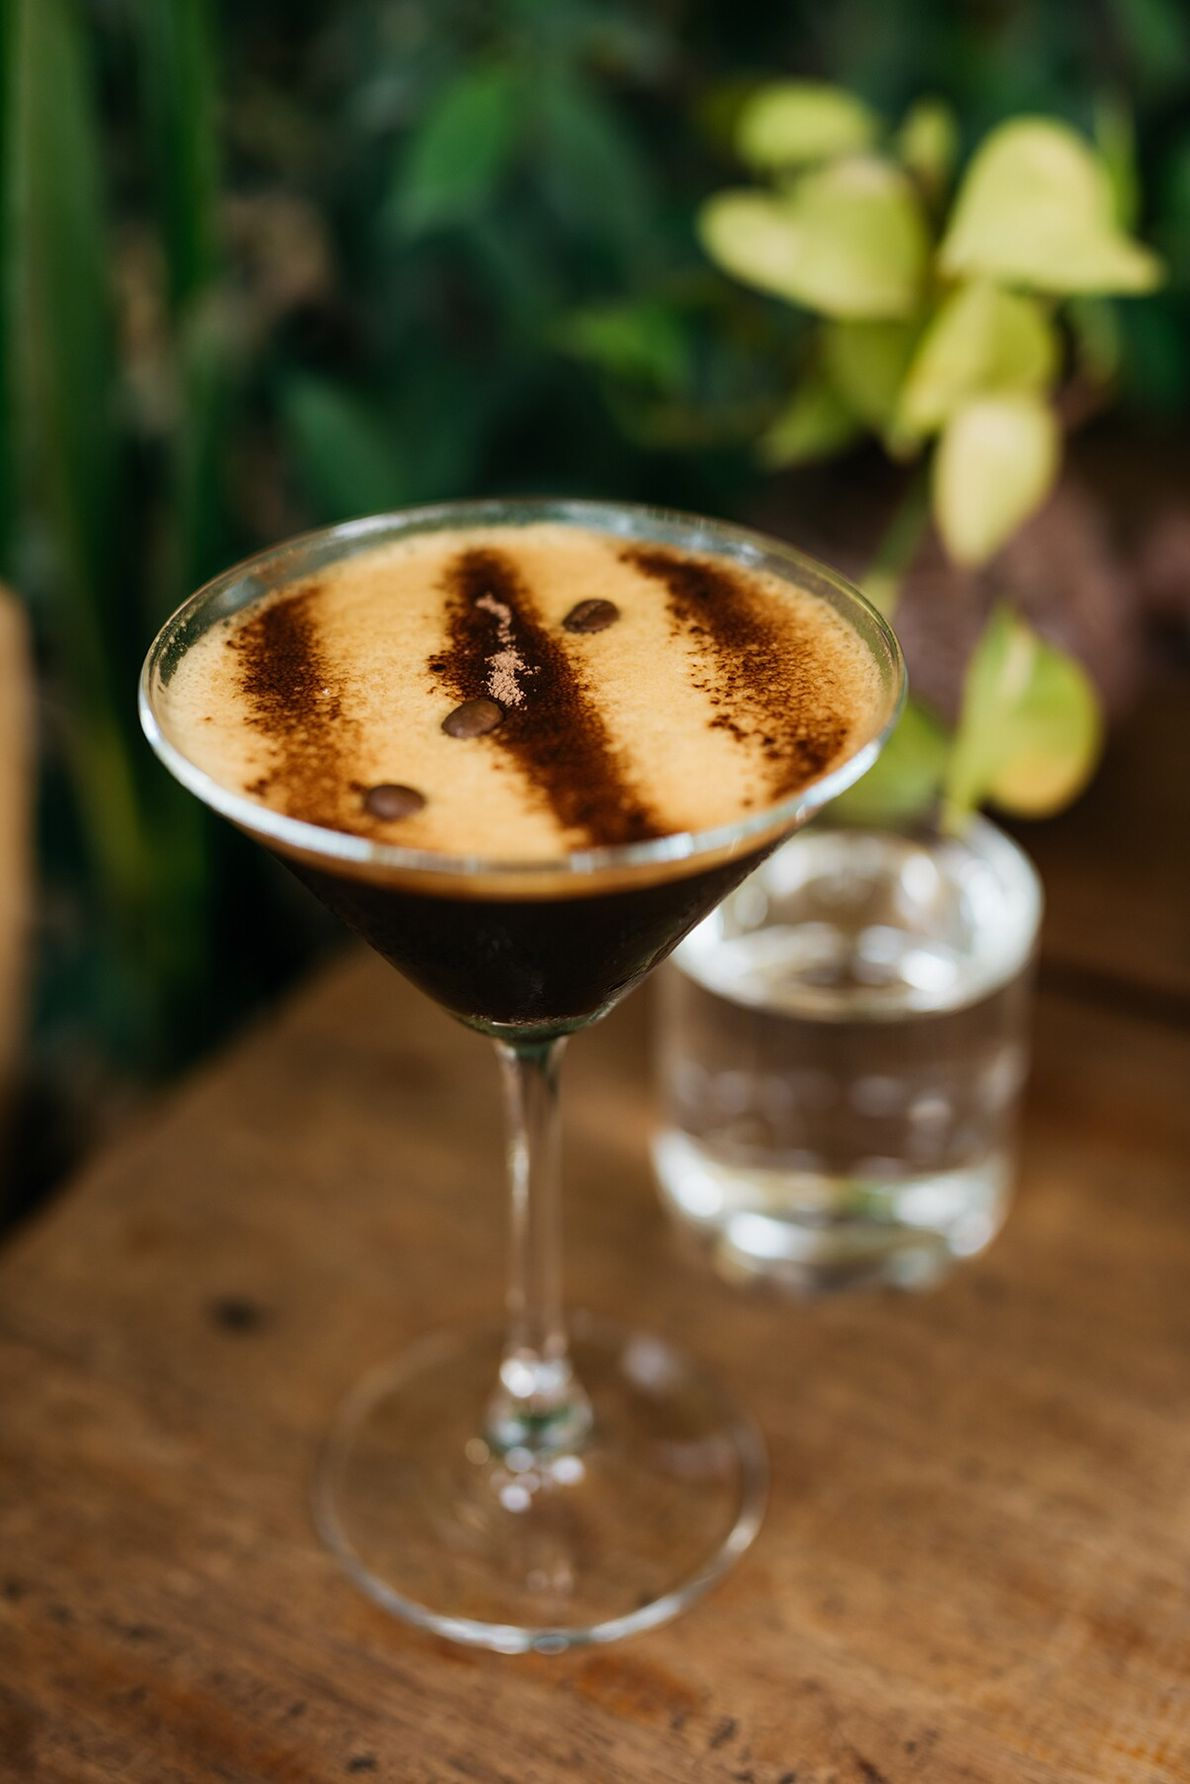 When the day is done, an espresso martini is on the cards at The Little Red ...